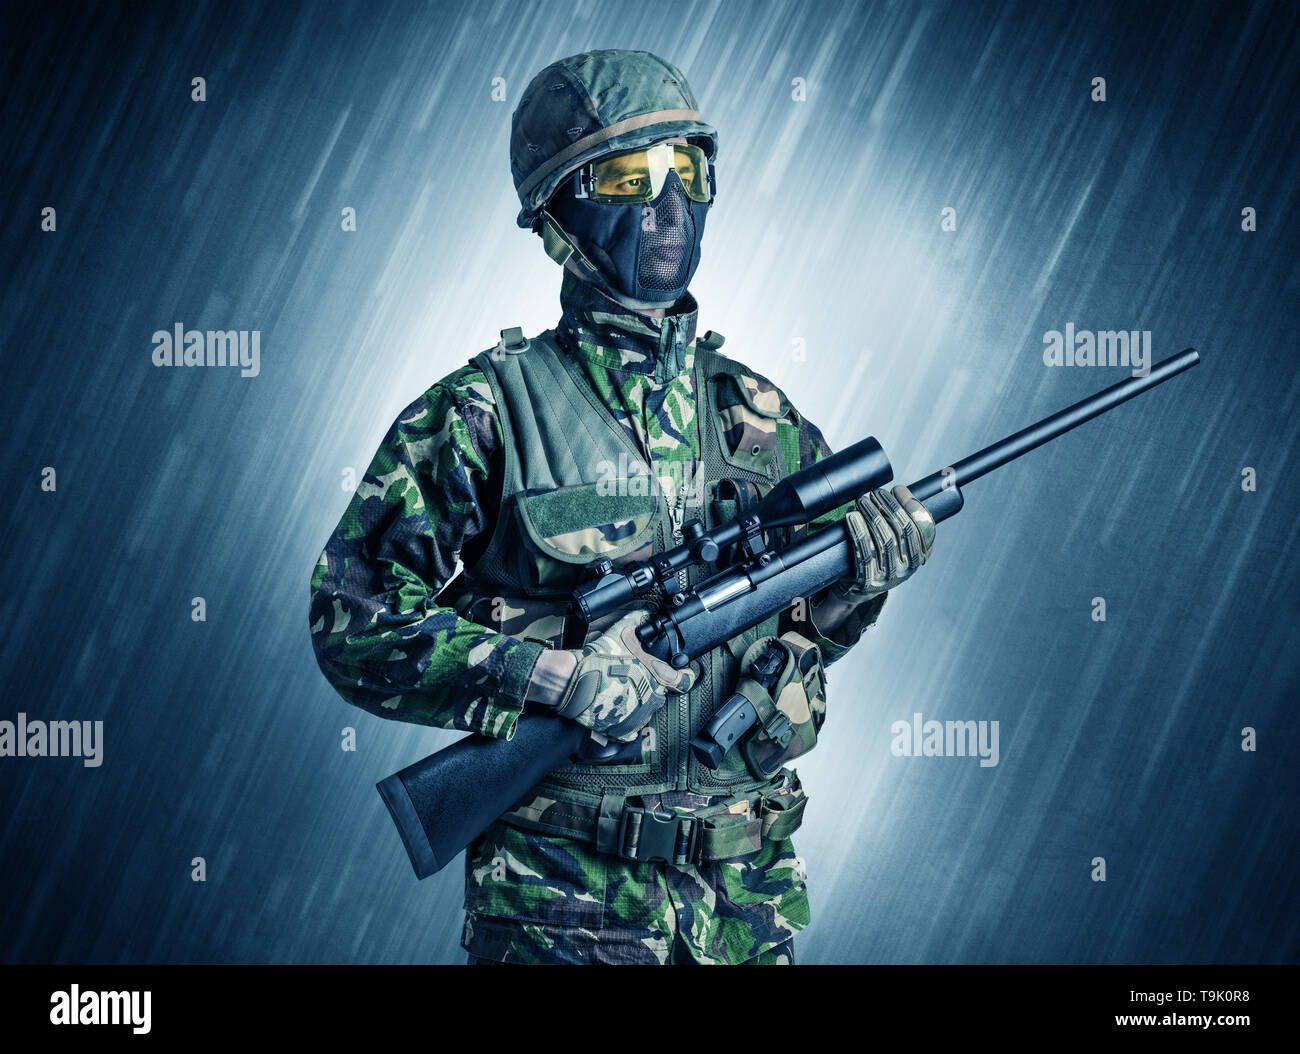 Armed soldier standing in rainy weather  - Stock Image